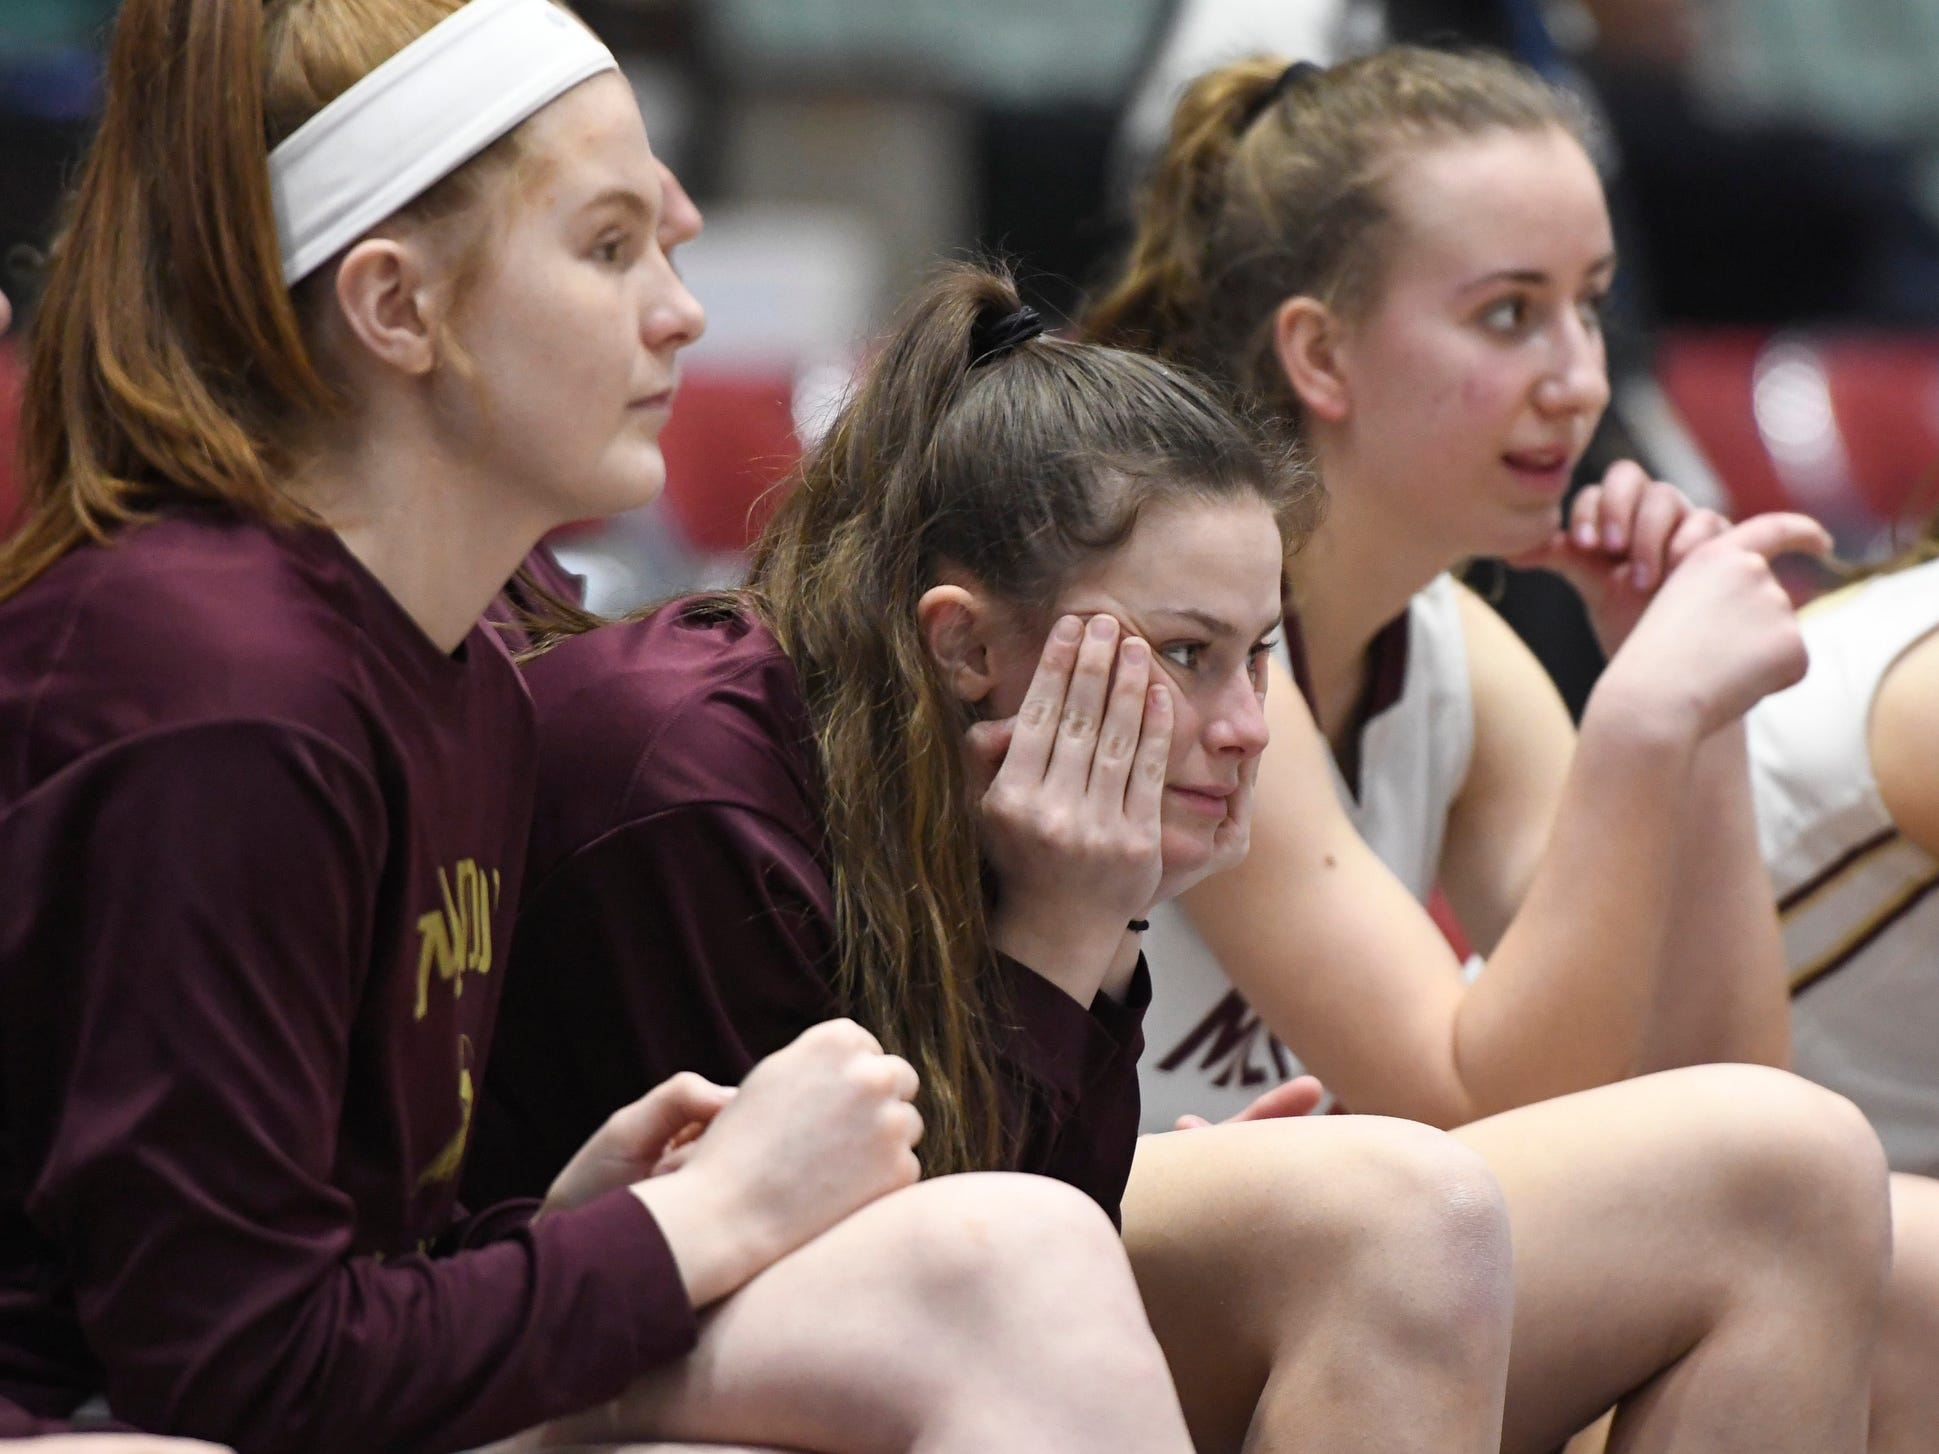 The Pittsford Mendon bench was tense as the  Vikings fell behind by 10 points in the Federation Tournament of Champions semifinal against James Madison at Cool Insuring Arena on Friday, Mar. 23, 2019, in Glens Falls. Mendon rallied to win, 49-43.